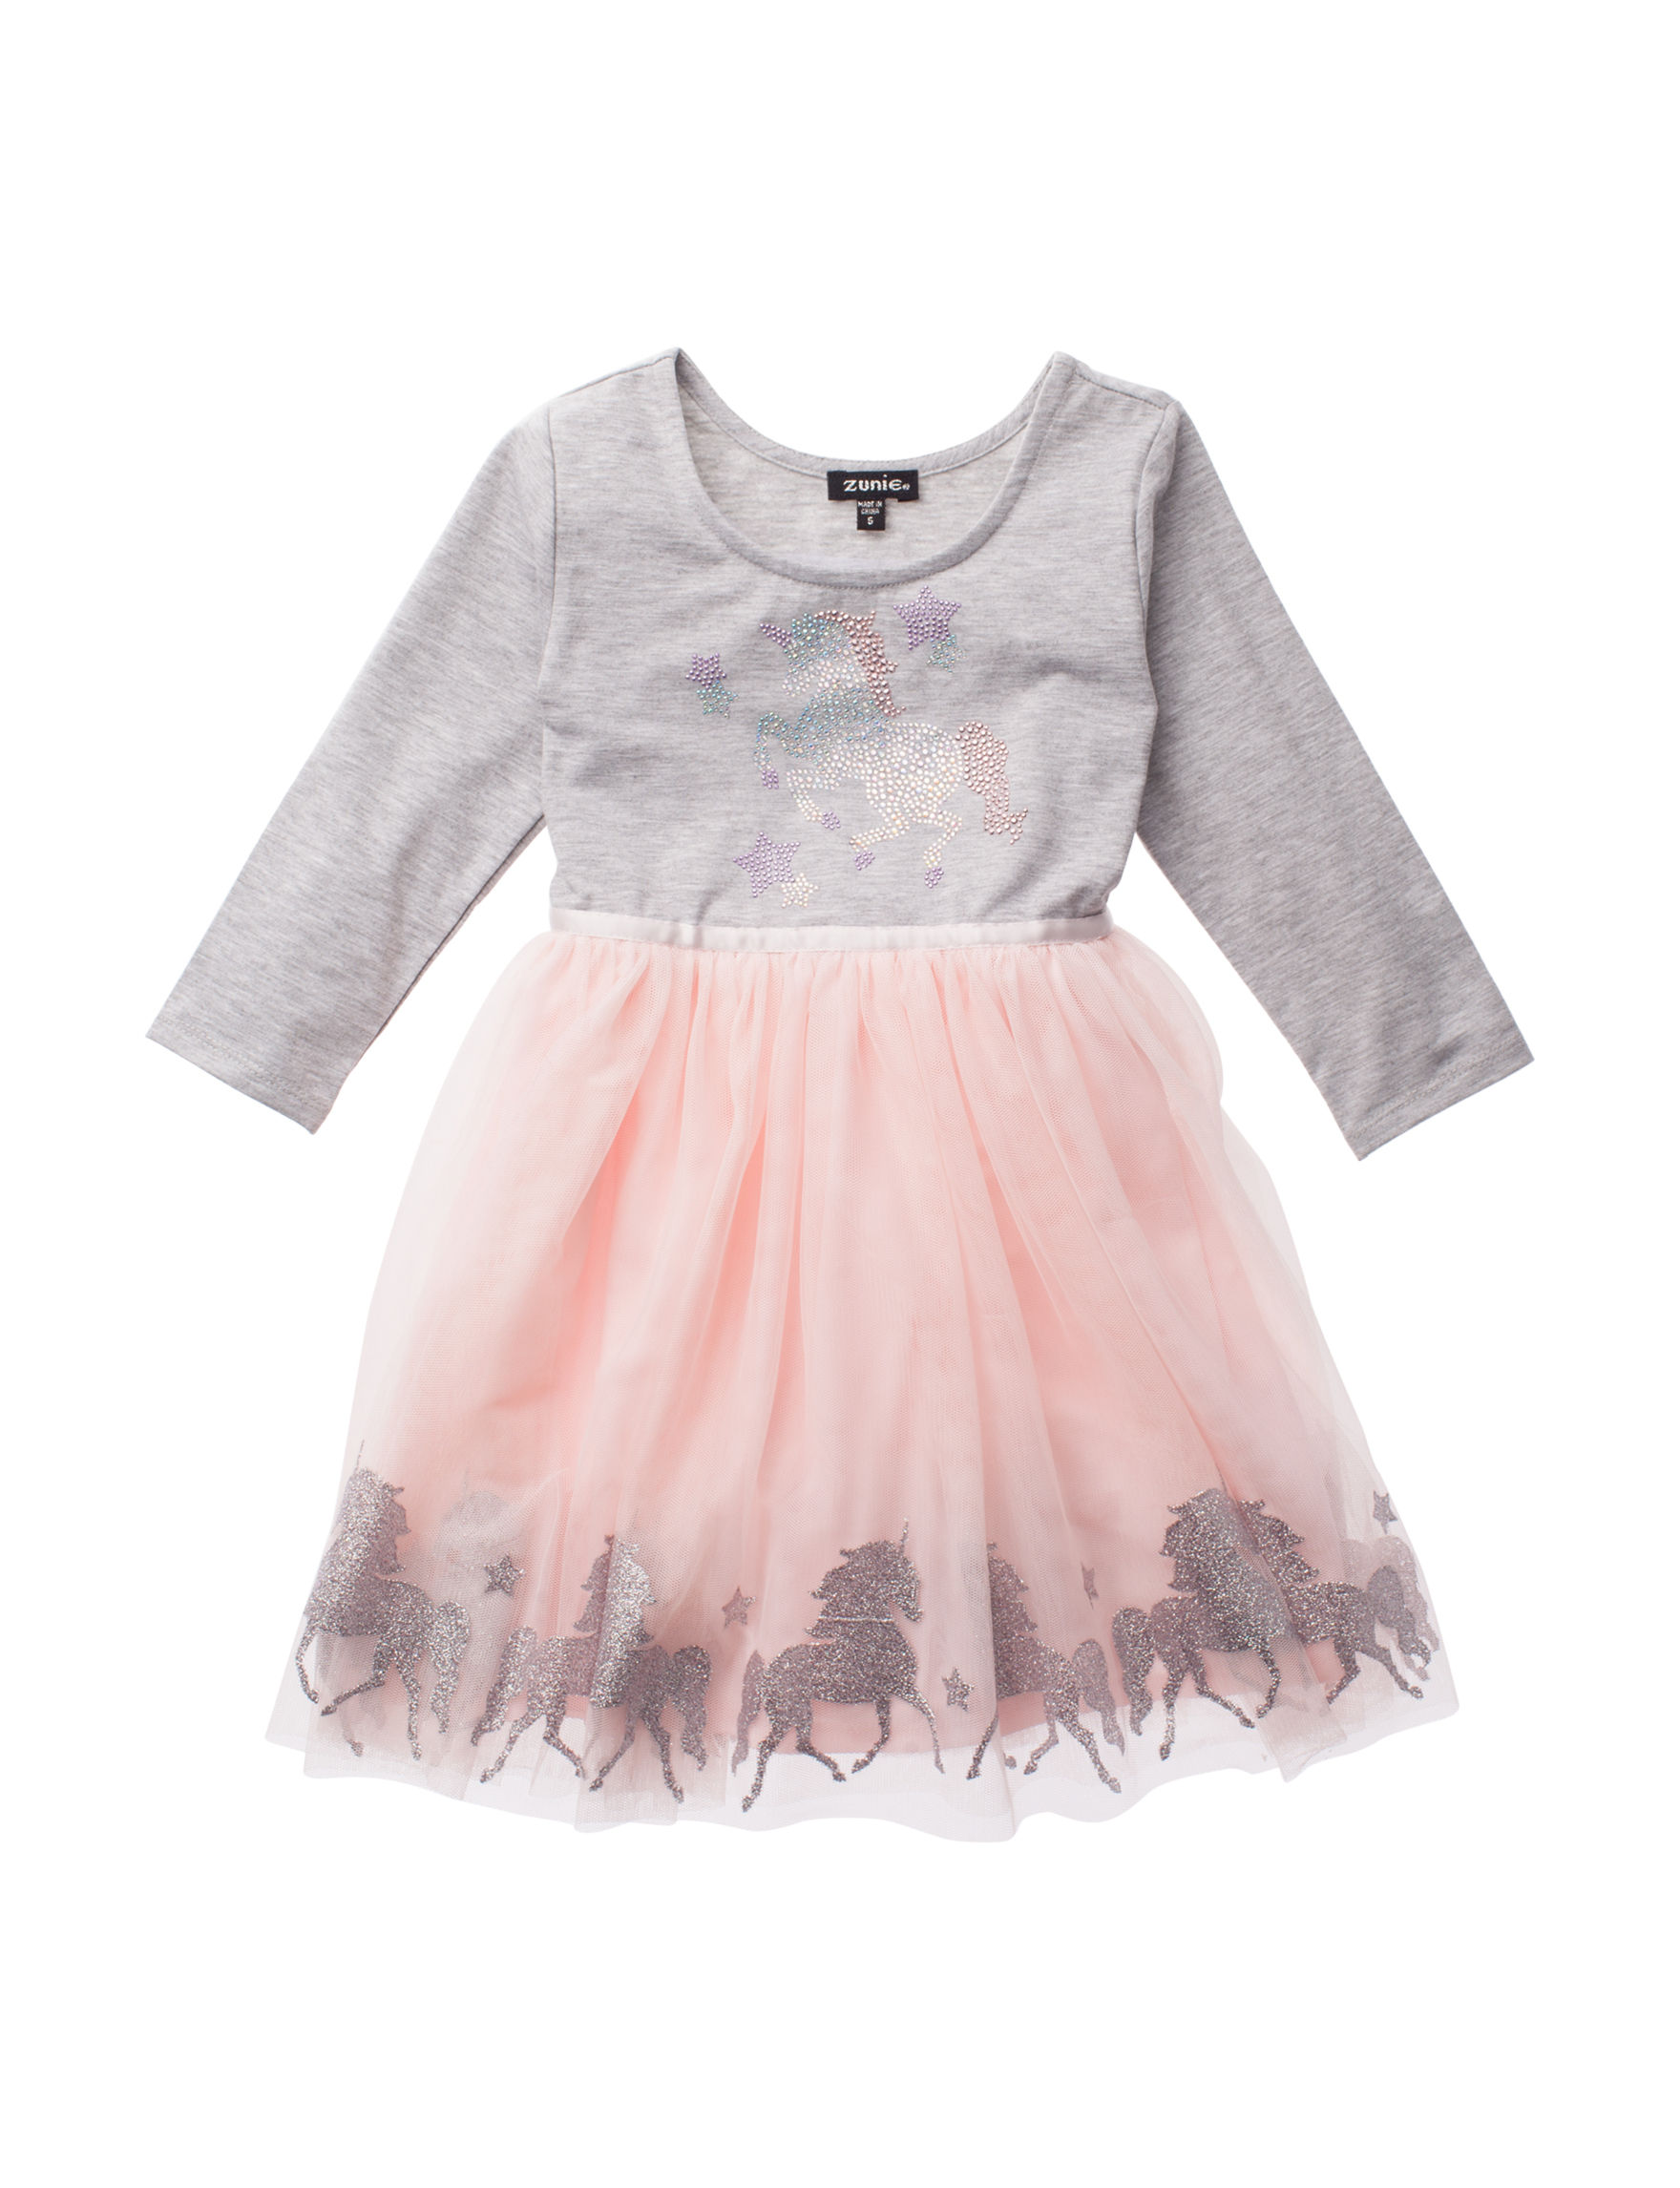 aaa7f24d6 Zunie Unicorn Tulle Dress - Girls 4-6x | Stage Stores